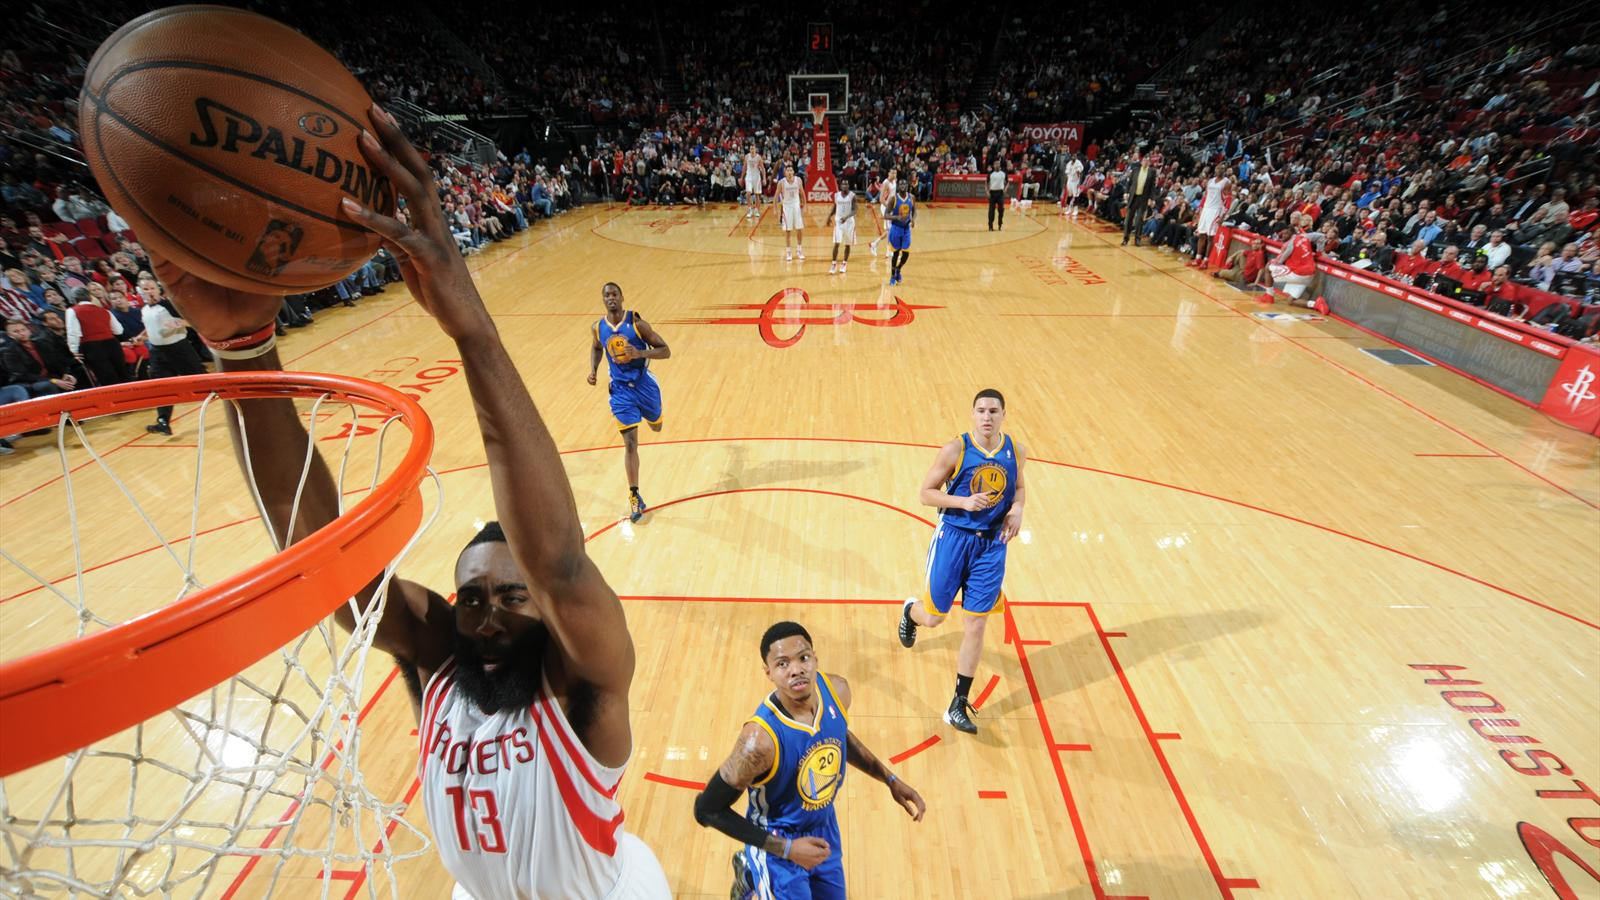 an overview of the basketball team houston rockets Clint n'dumba-capela (born may 18, 1994) is a swiss professional basketball player for the houston rockets of the national basketball association (nba.